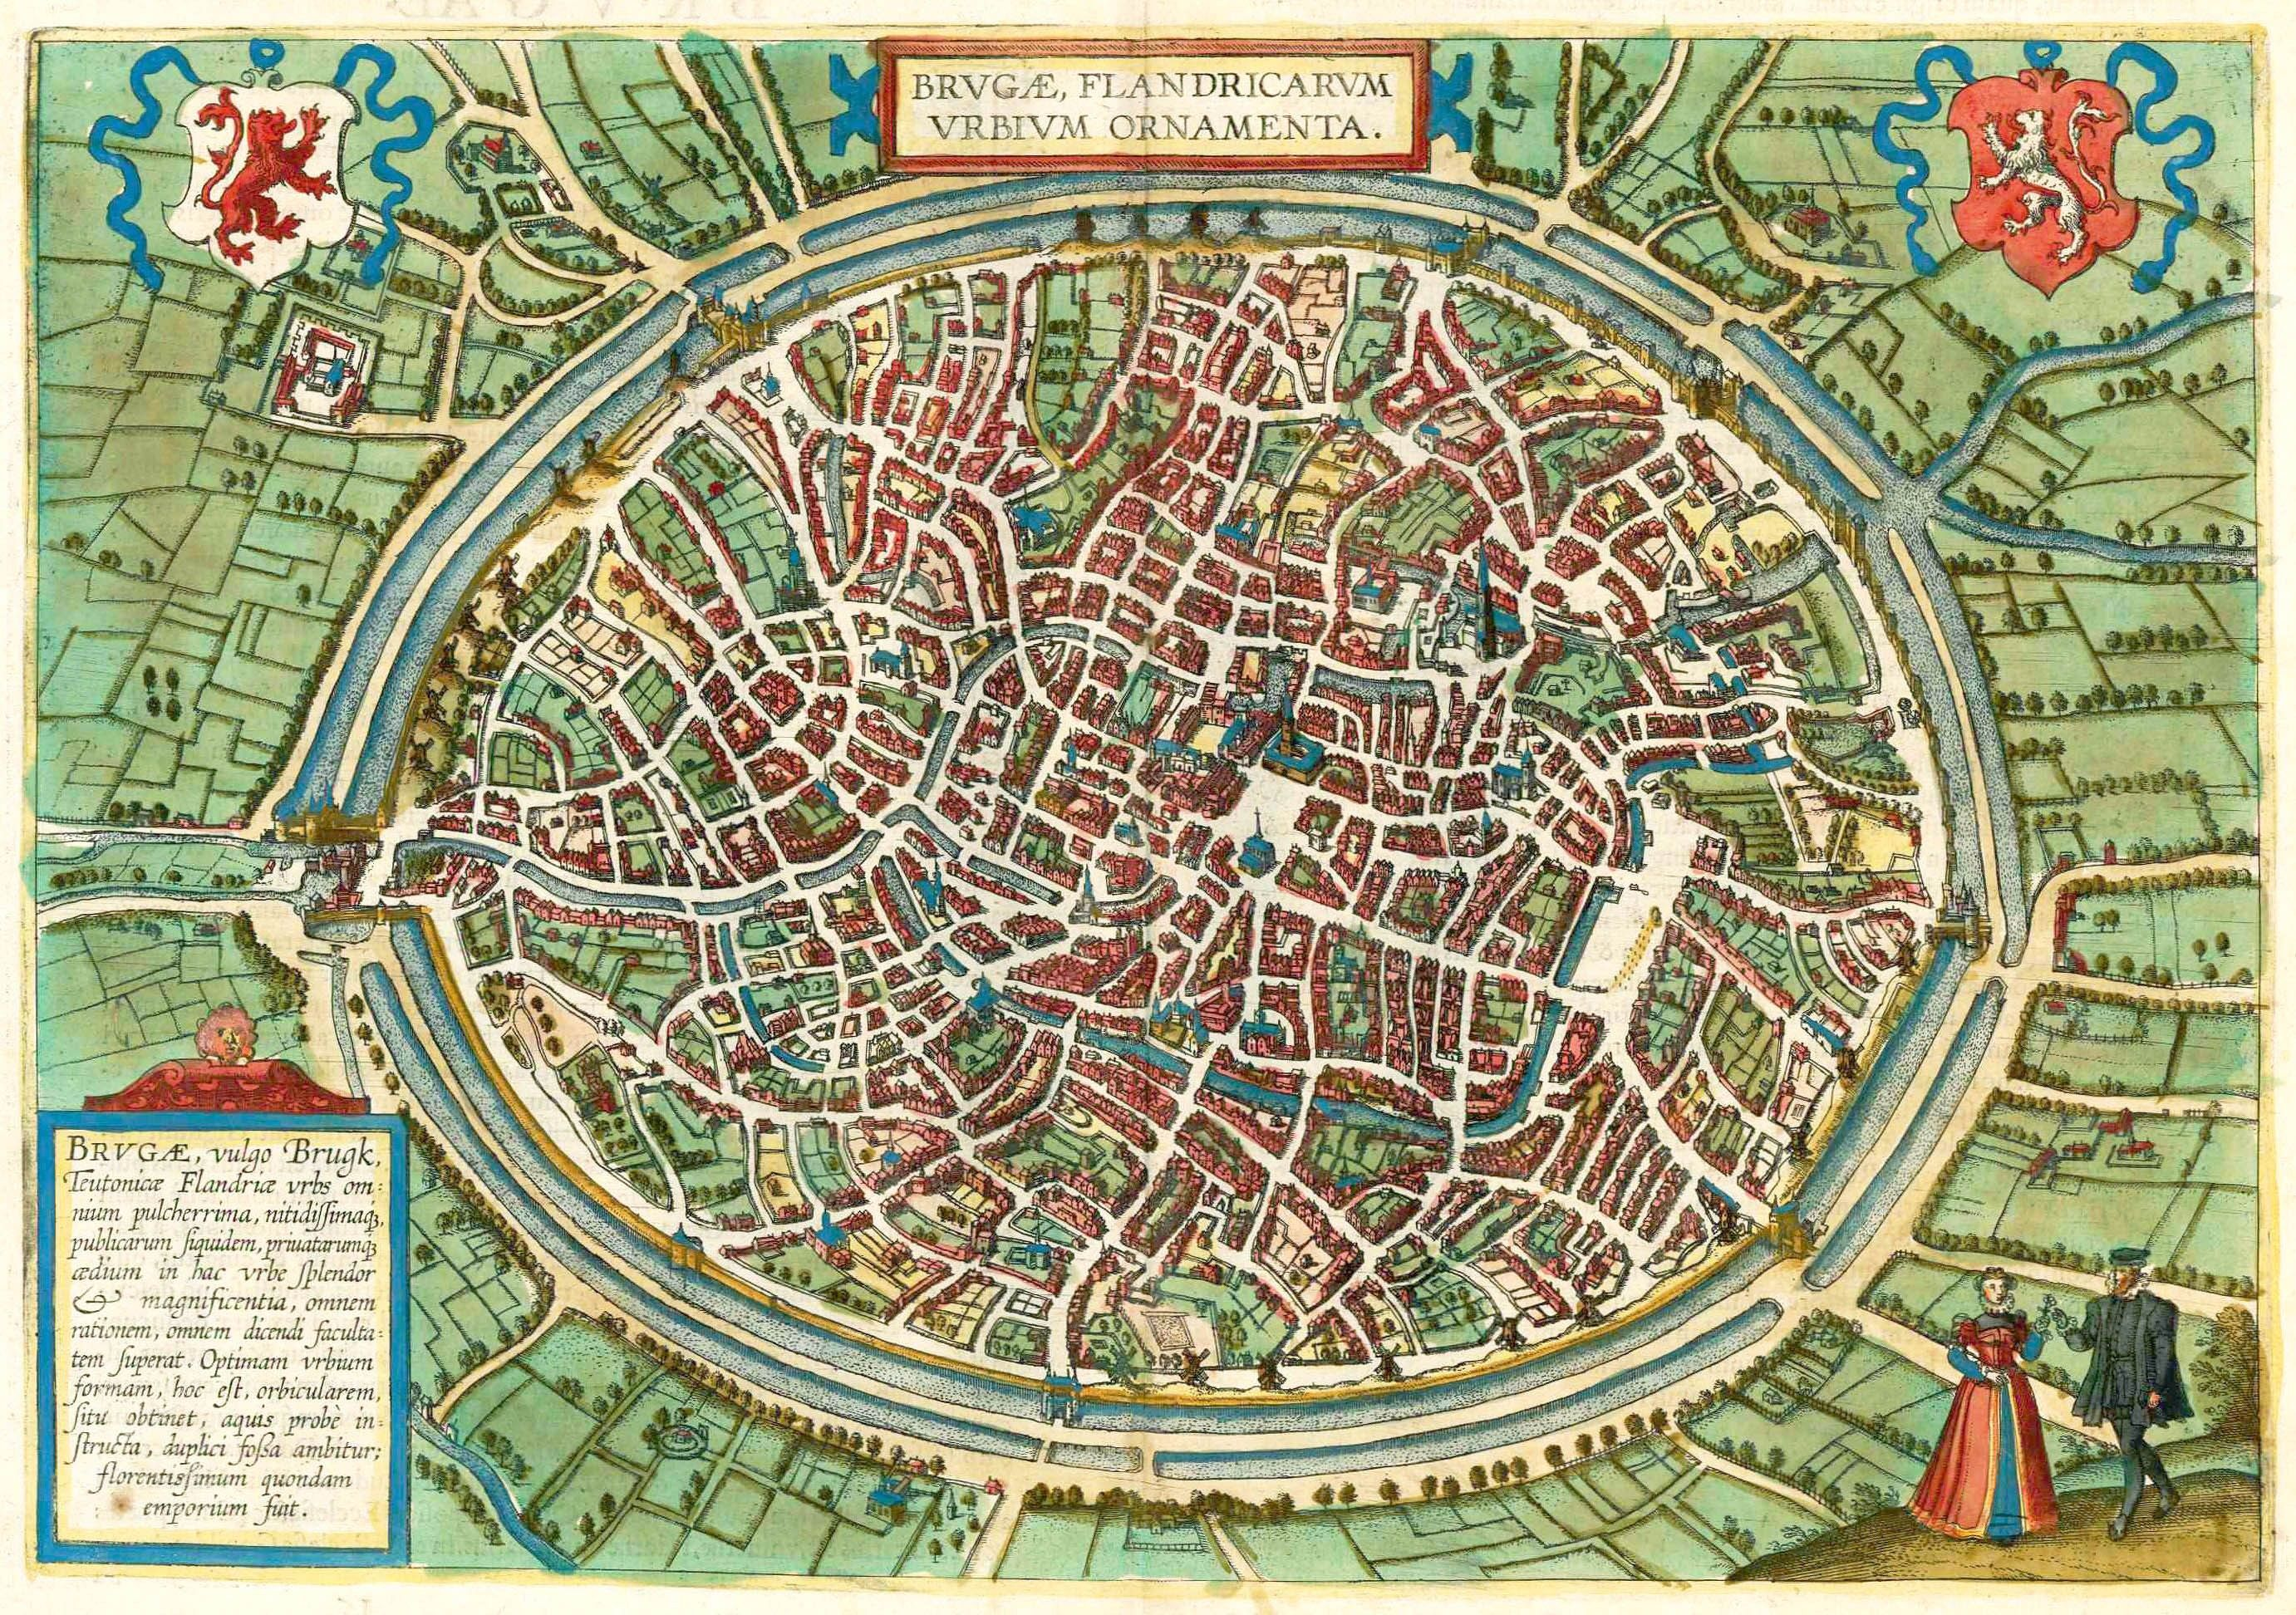 Antique map Birdseye plan of Brugge Bruges by Braun and